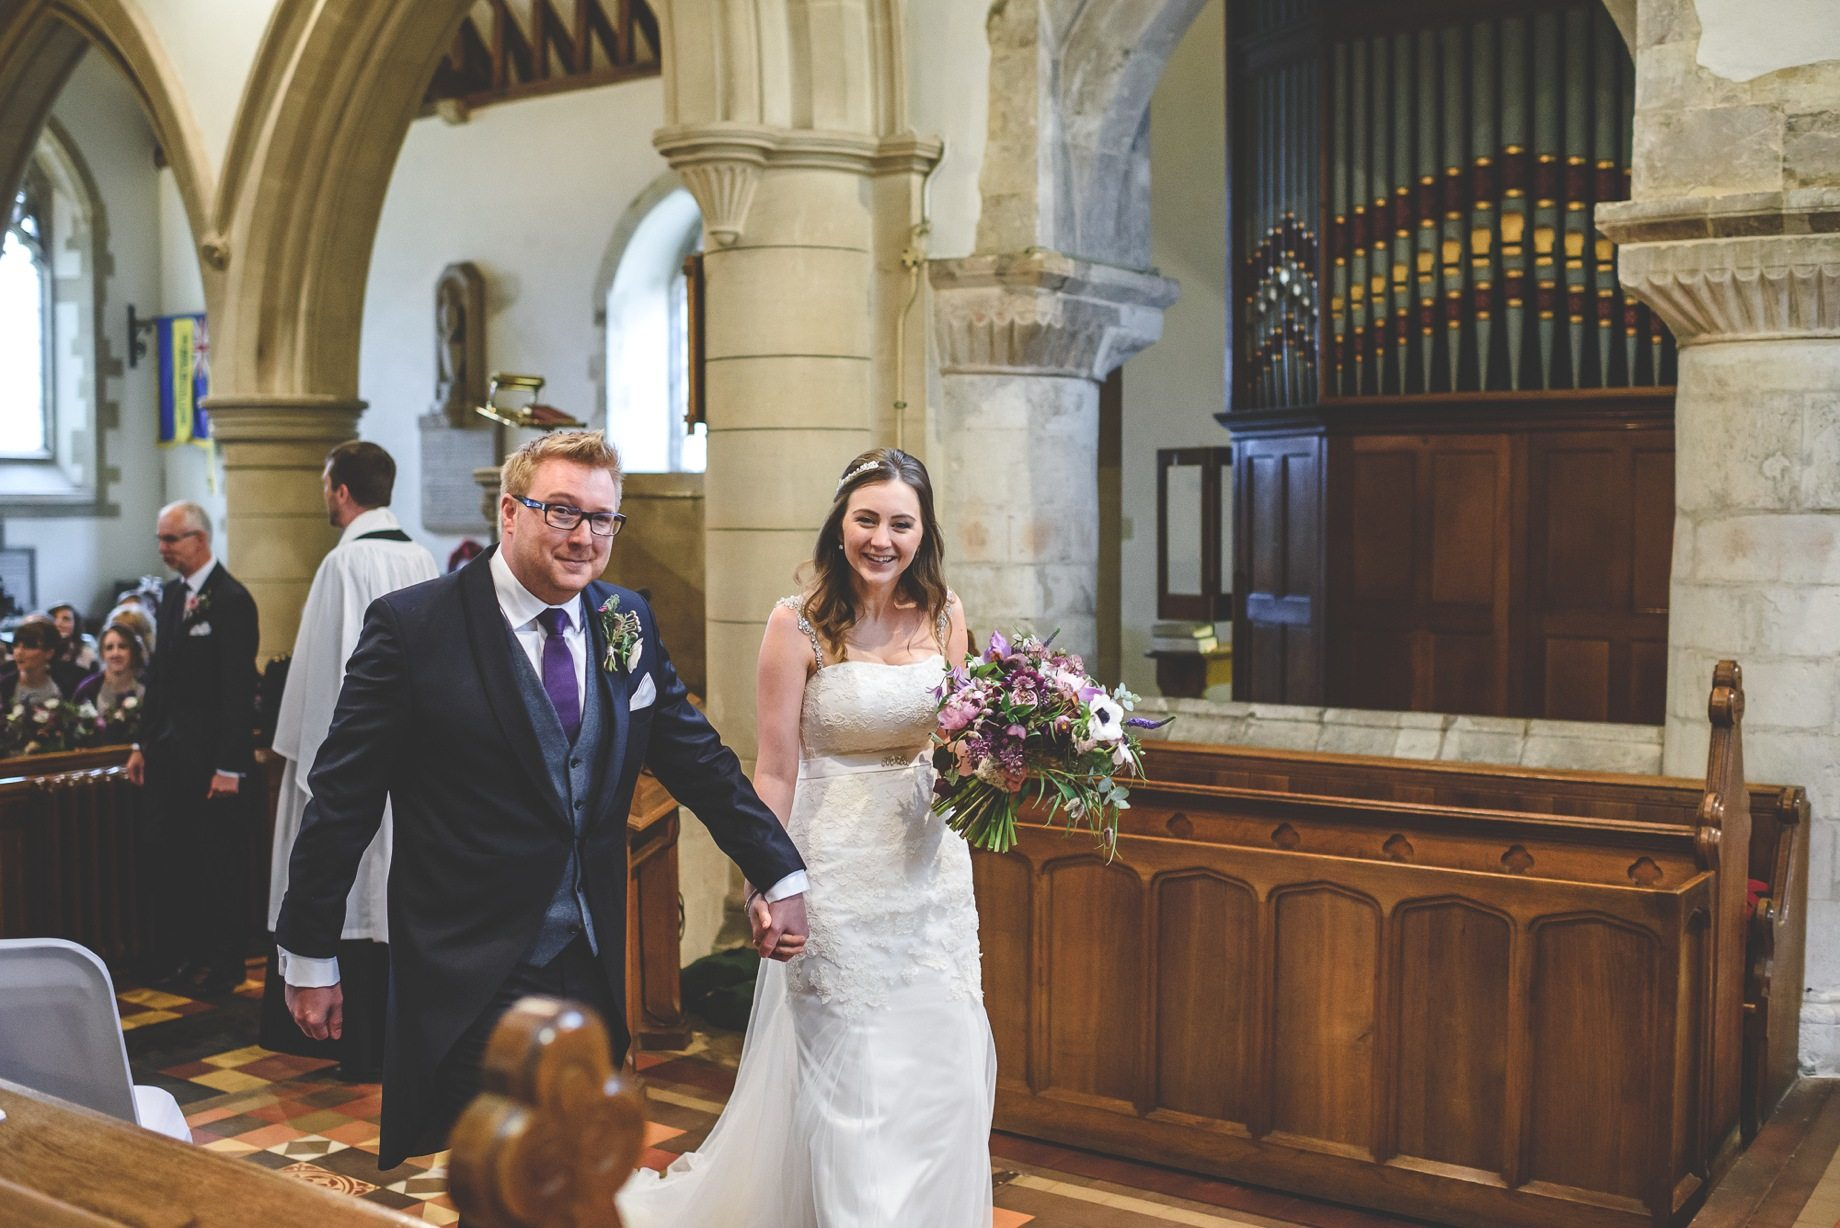 Heather and Chris - Hampshire wedding photography (77 of 174)